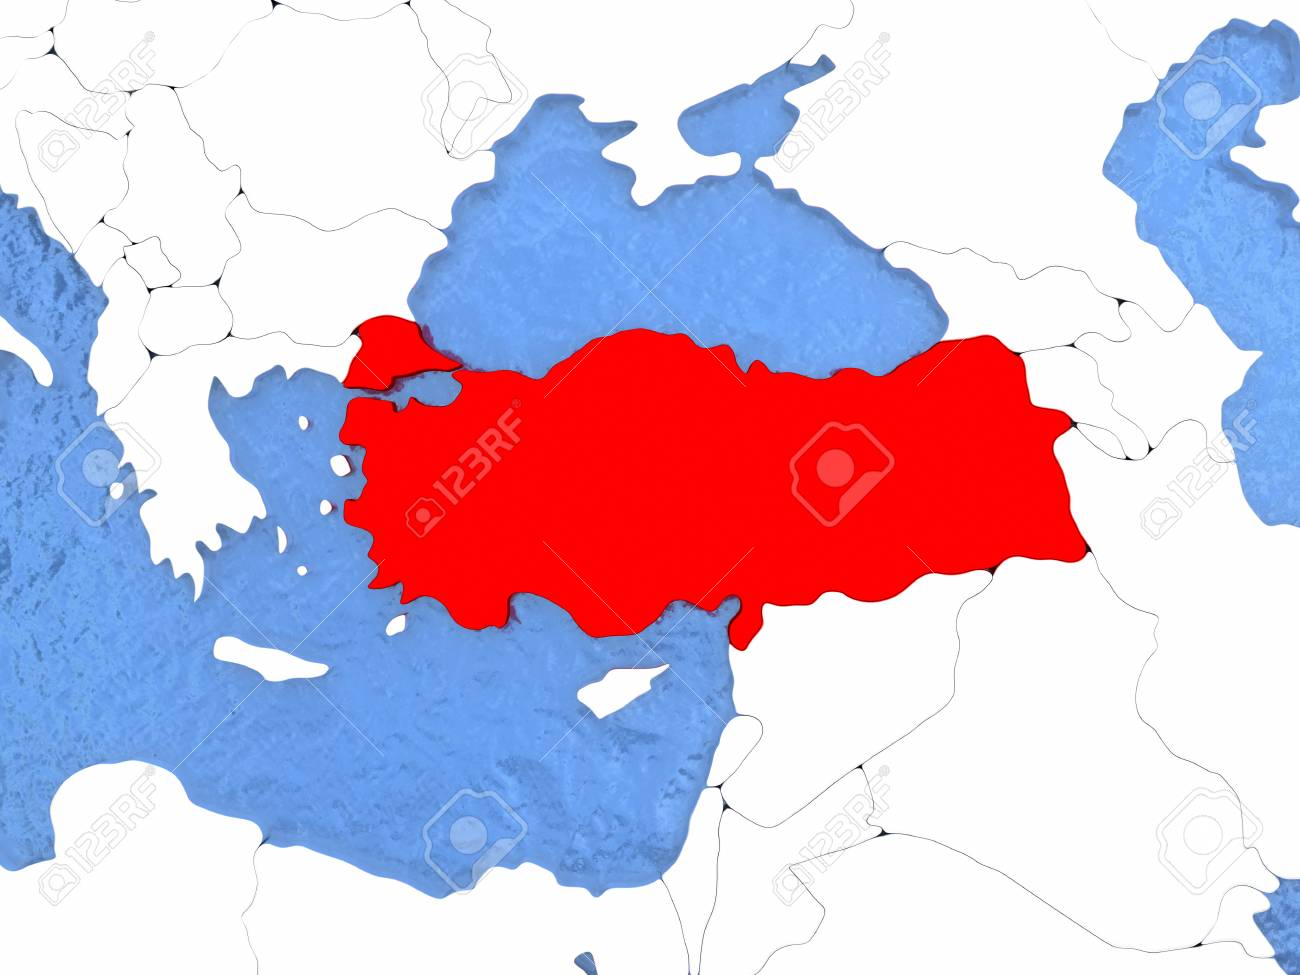 Political Map Turkey In Red 3d Illustration With Watery Blue